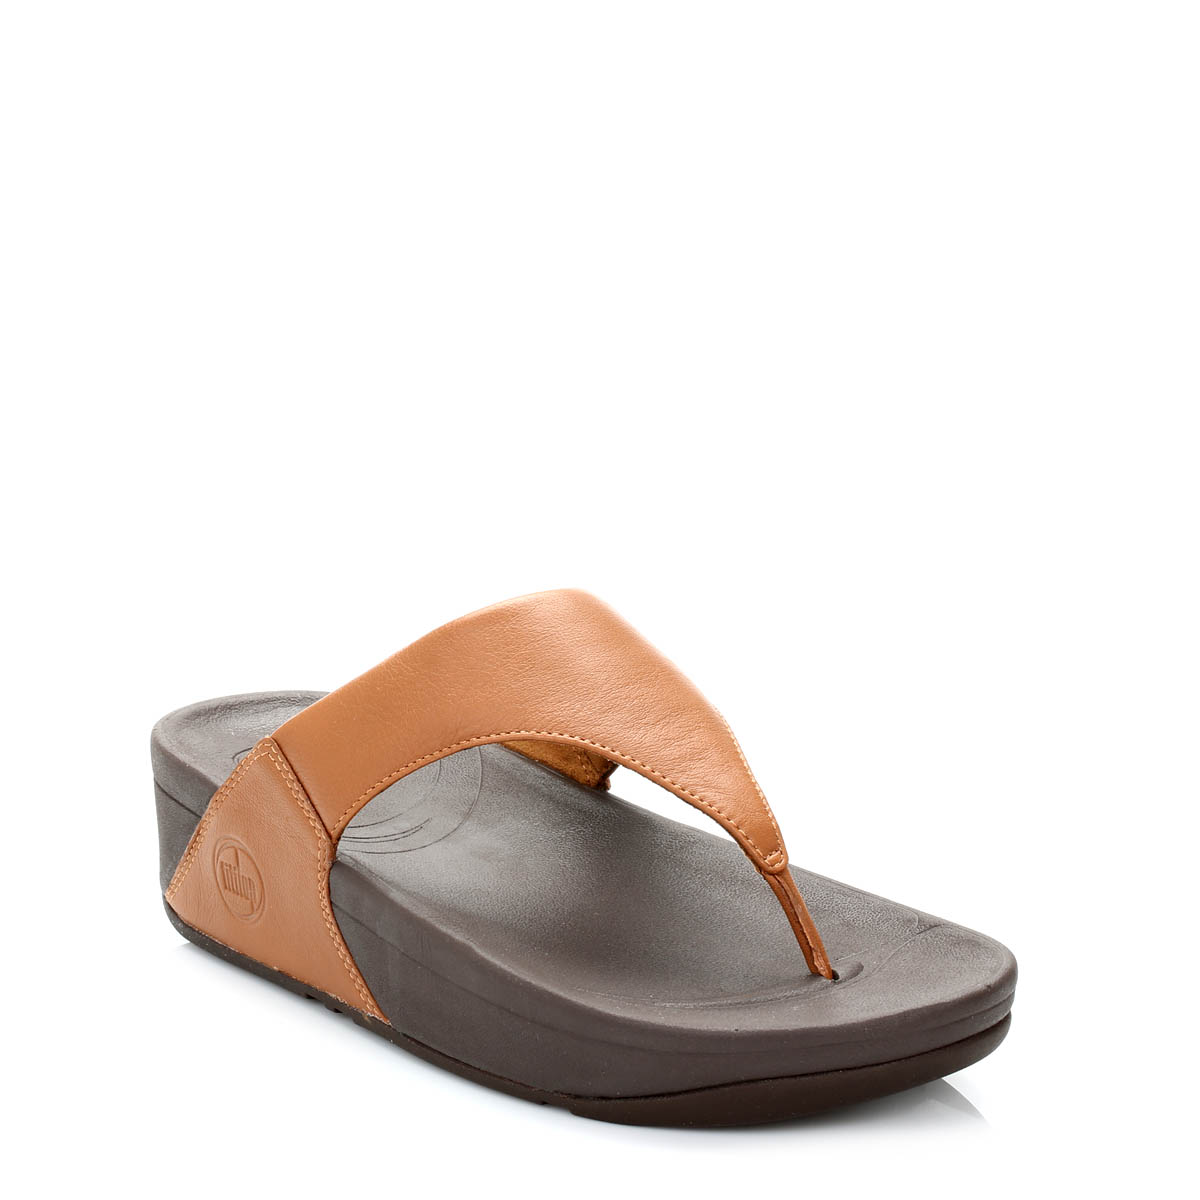 2112fcd3fb05f0 Details about FitFlop Womens Sandals Toffee Tan Brown Lulu Leather Thong  Slip On Toe Post